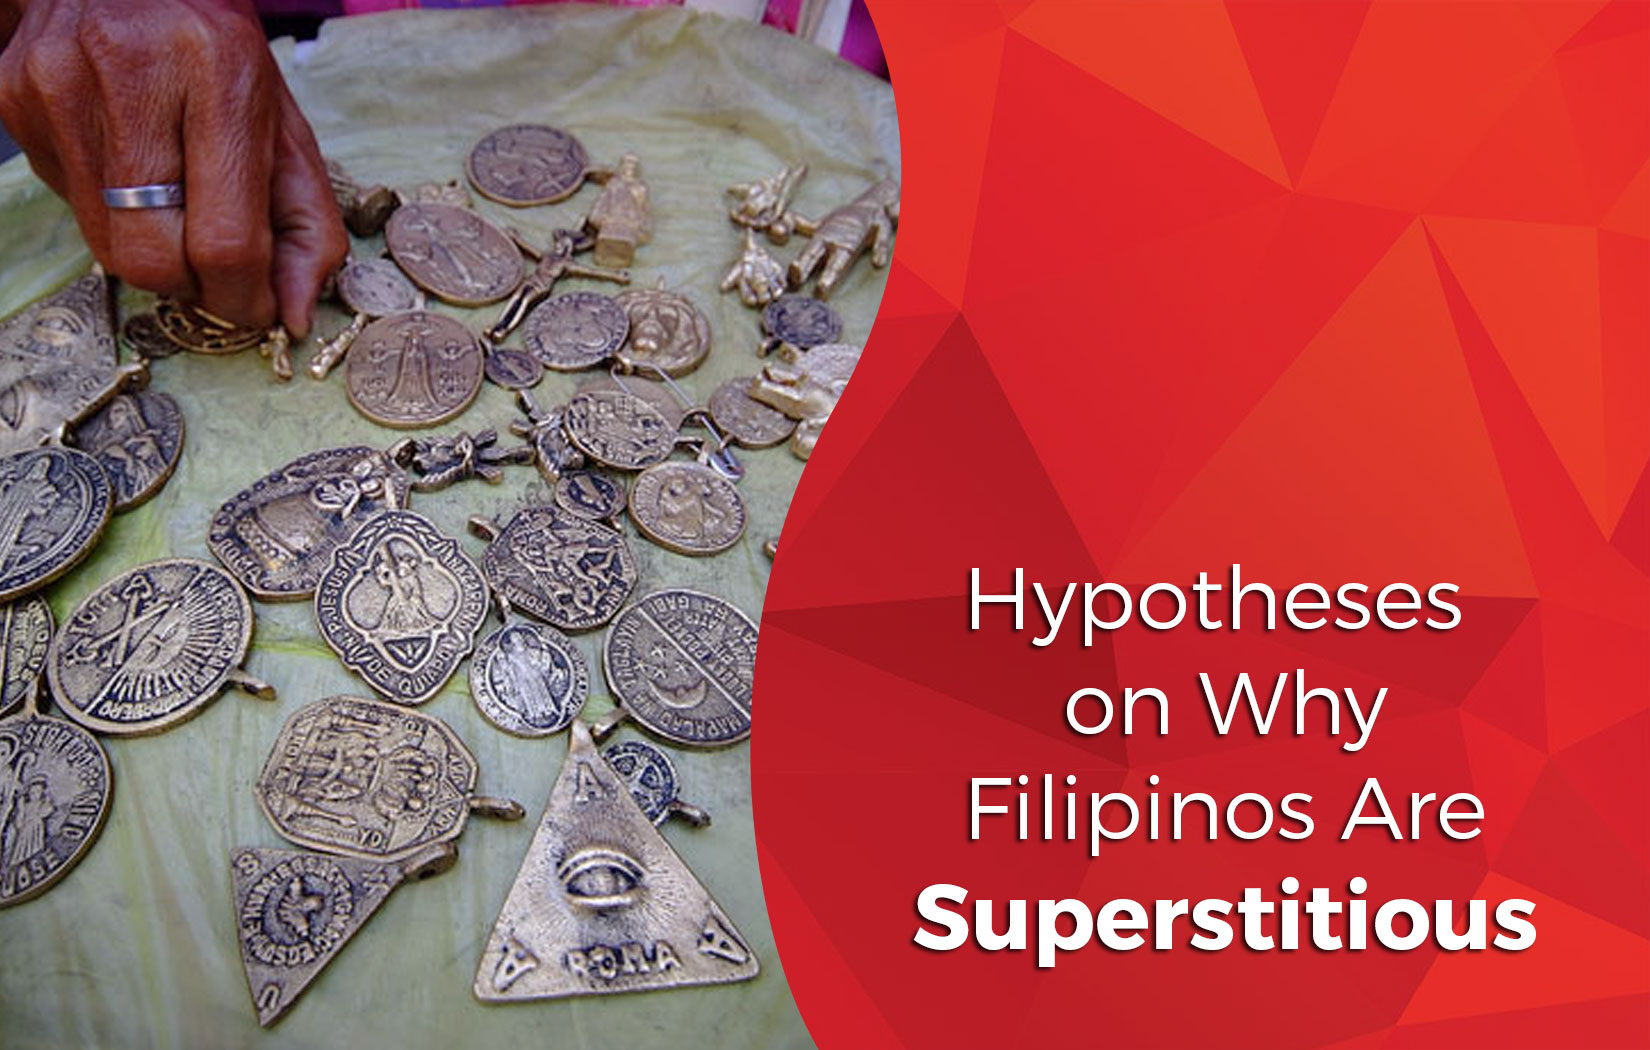 Why Filipinos are Superstitious